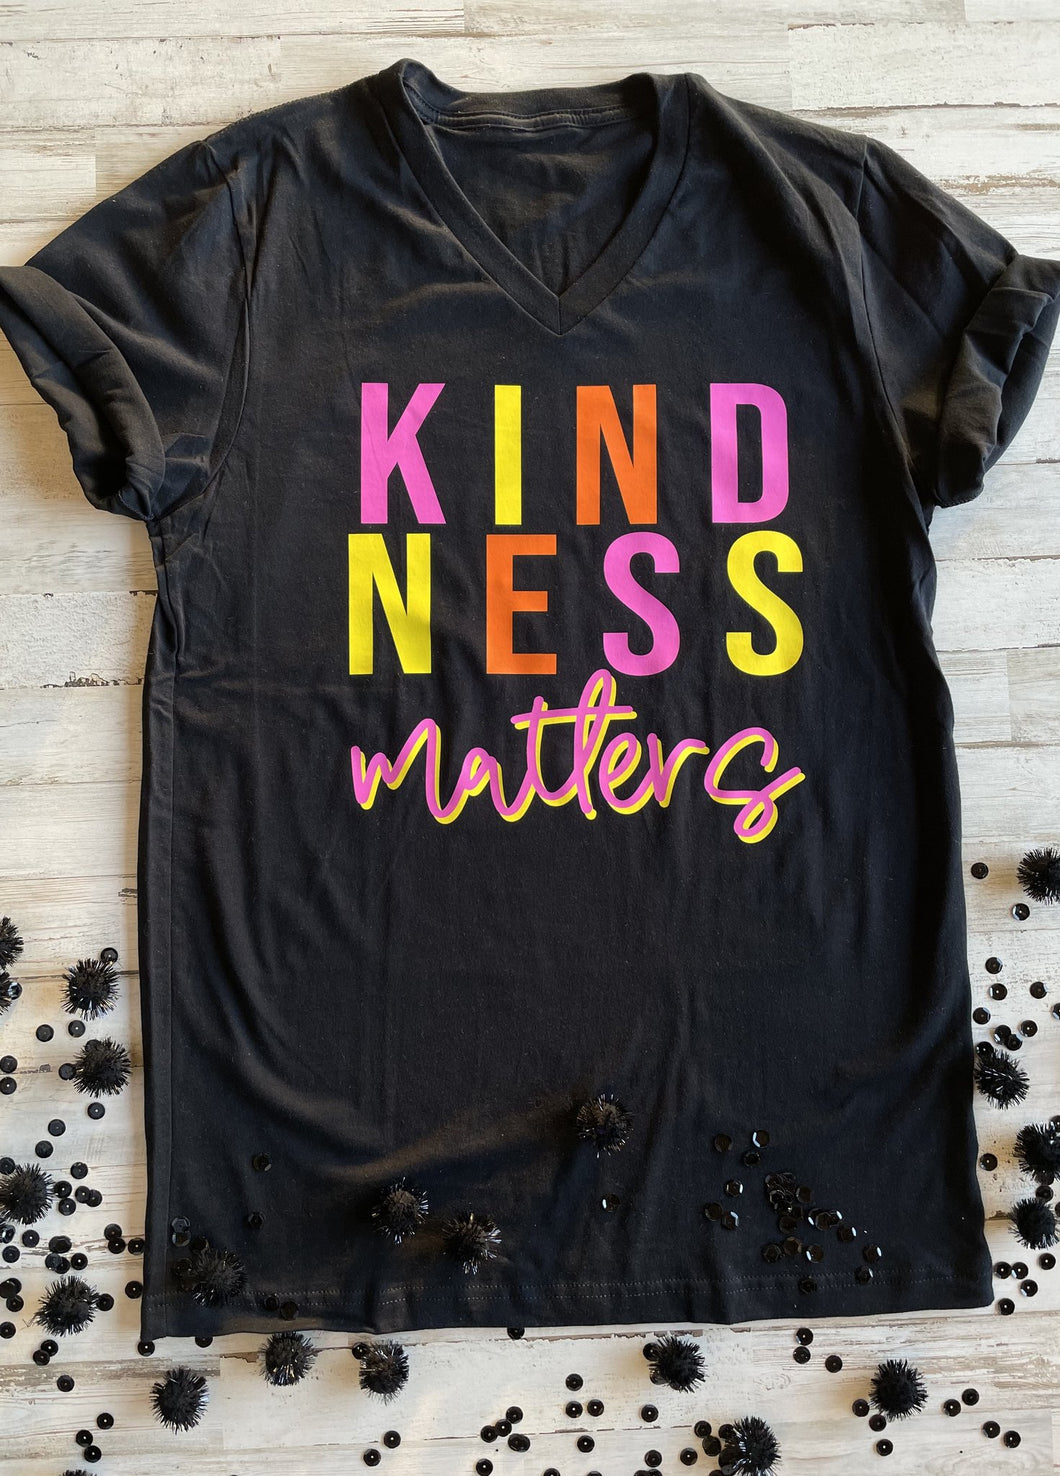 Kindness Matters Black V-Neck Graphic T